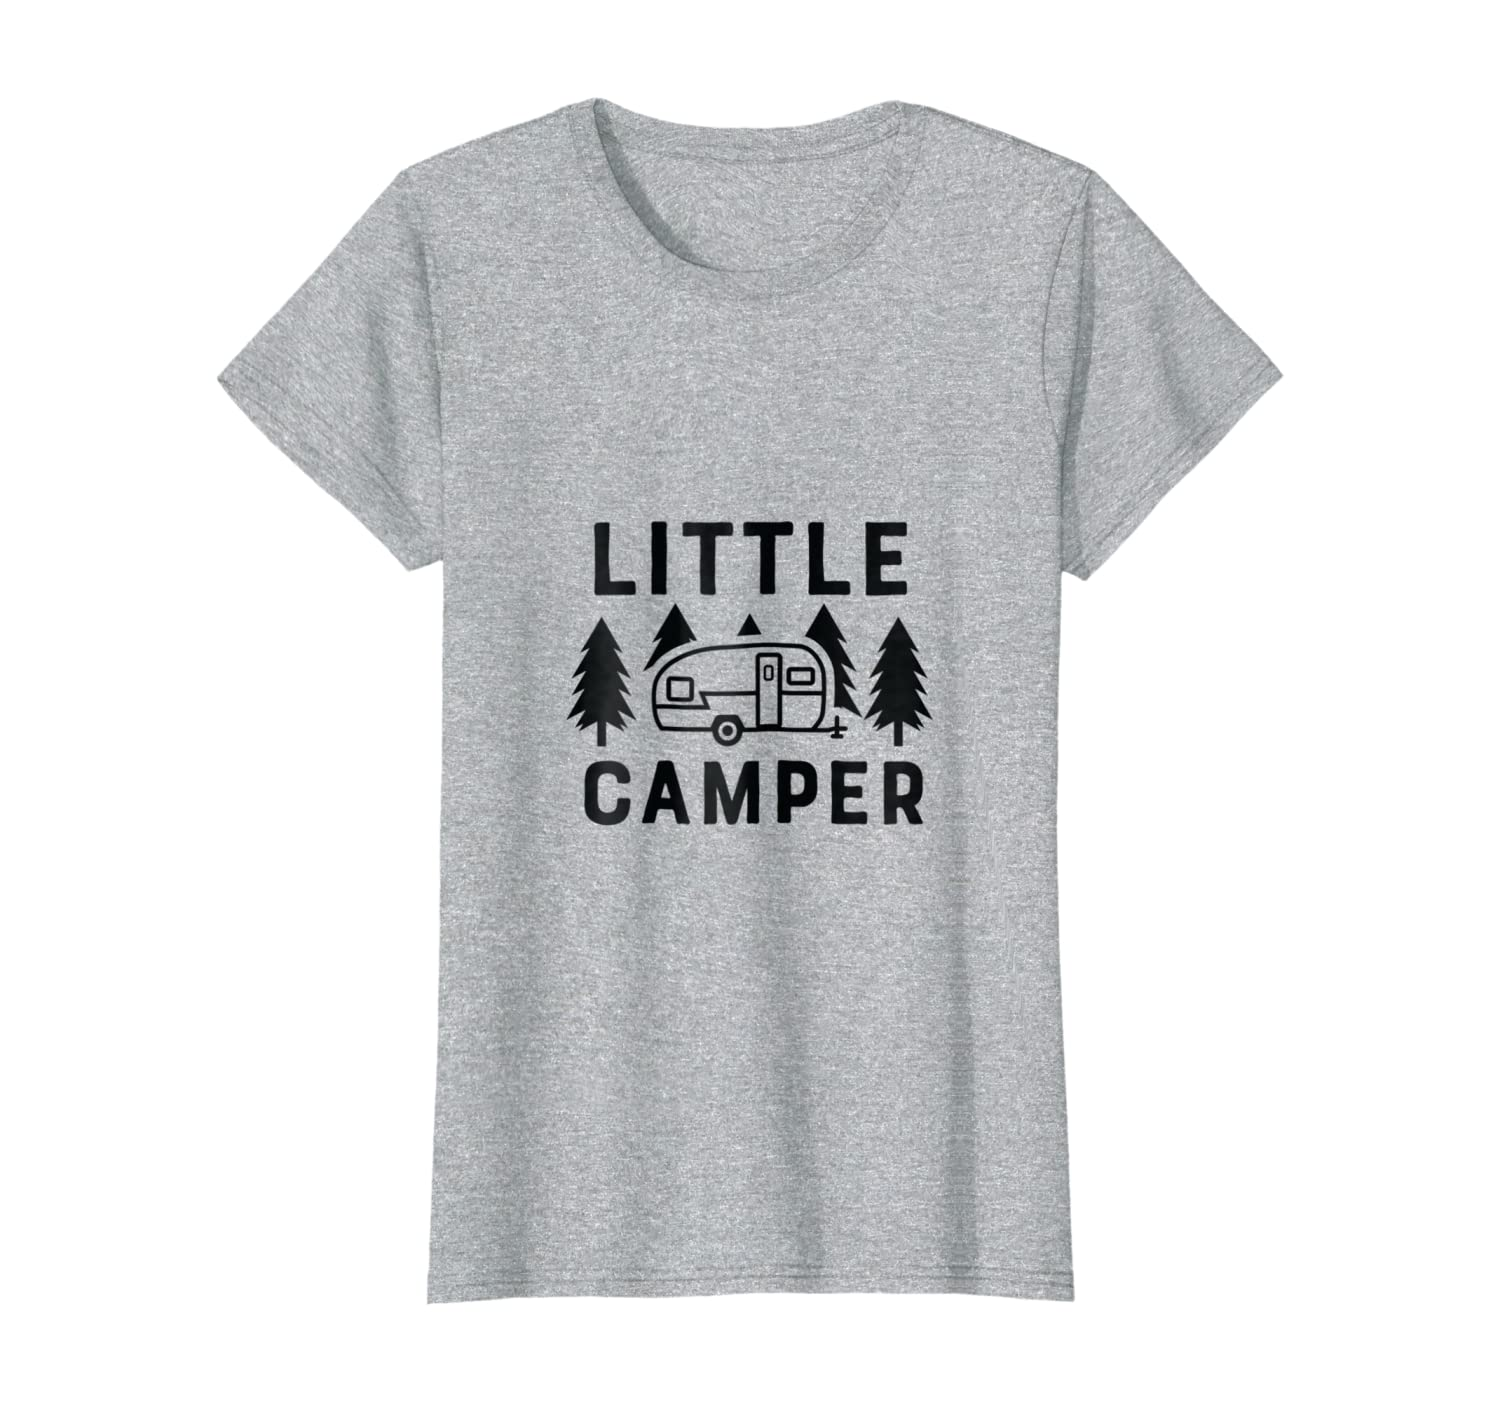 Kids Youth T Shirt This girl Loves Camping Tents Glamping